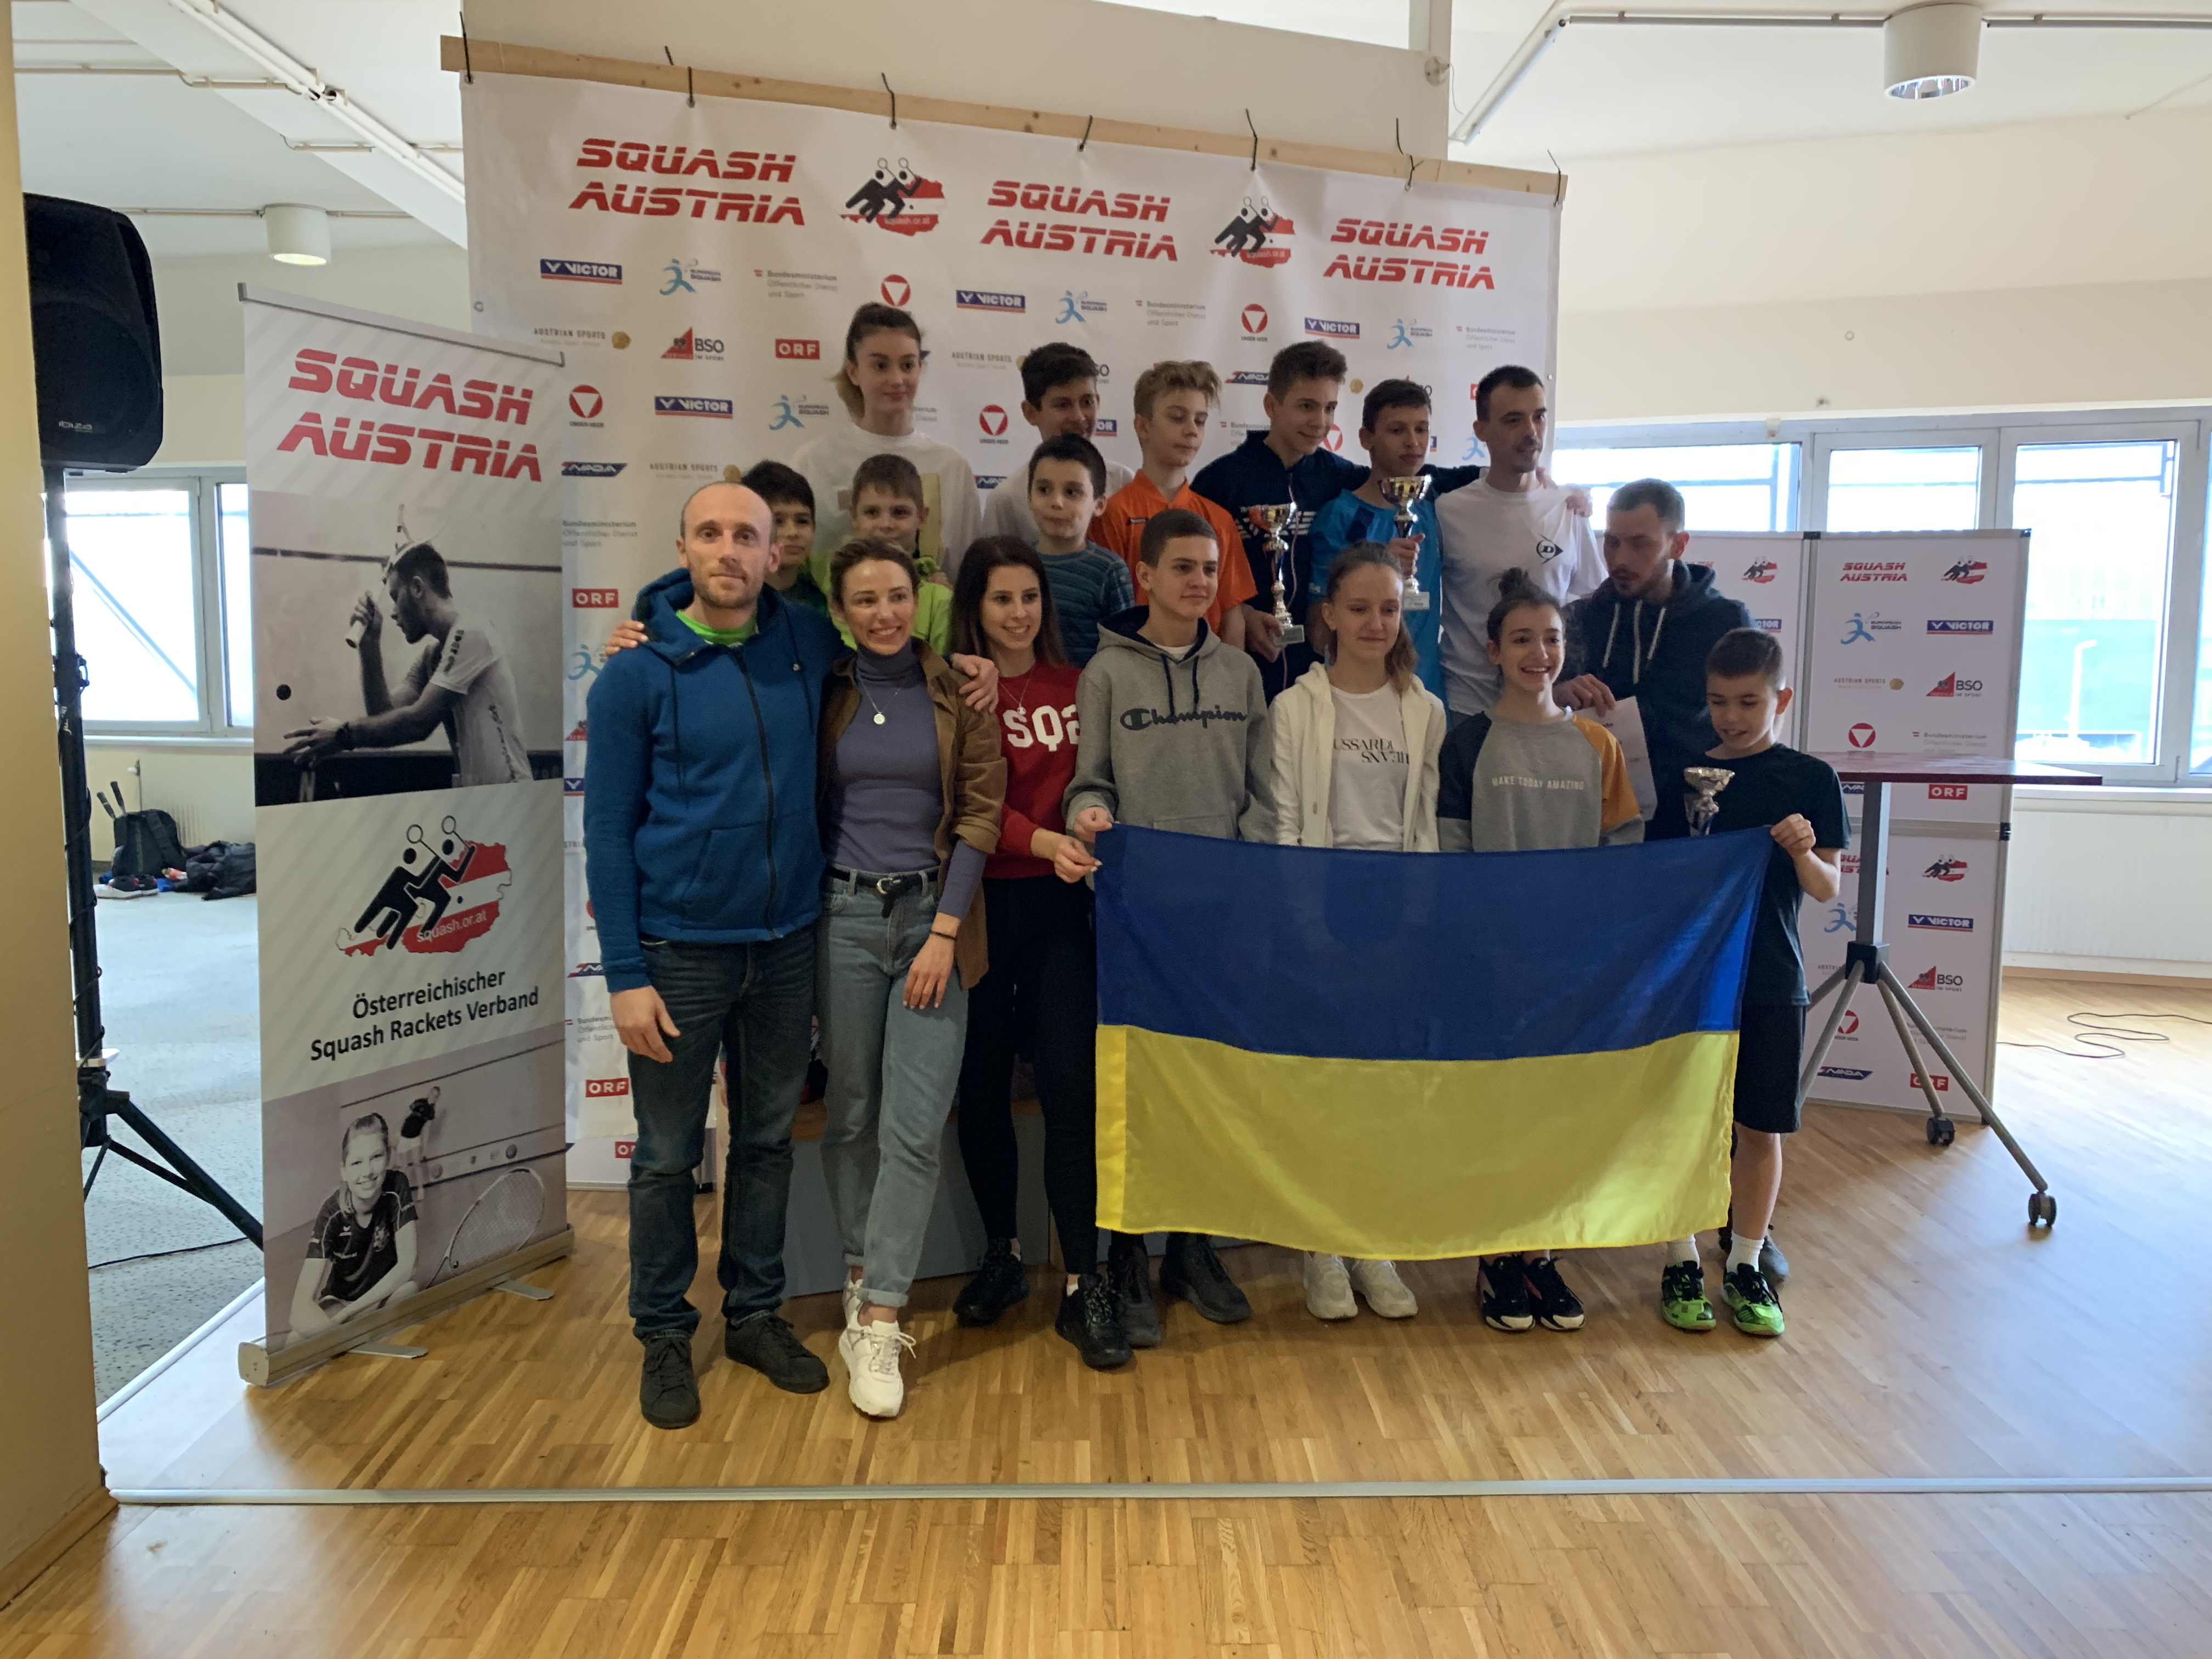 Austrian Junior Open 2020: Ukrainian juniors return home with medals and first place overall!